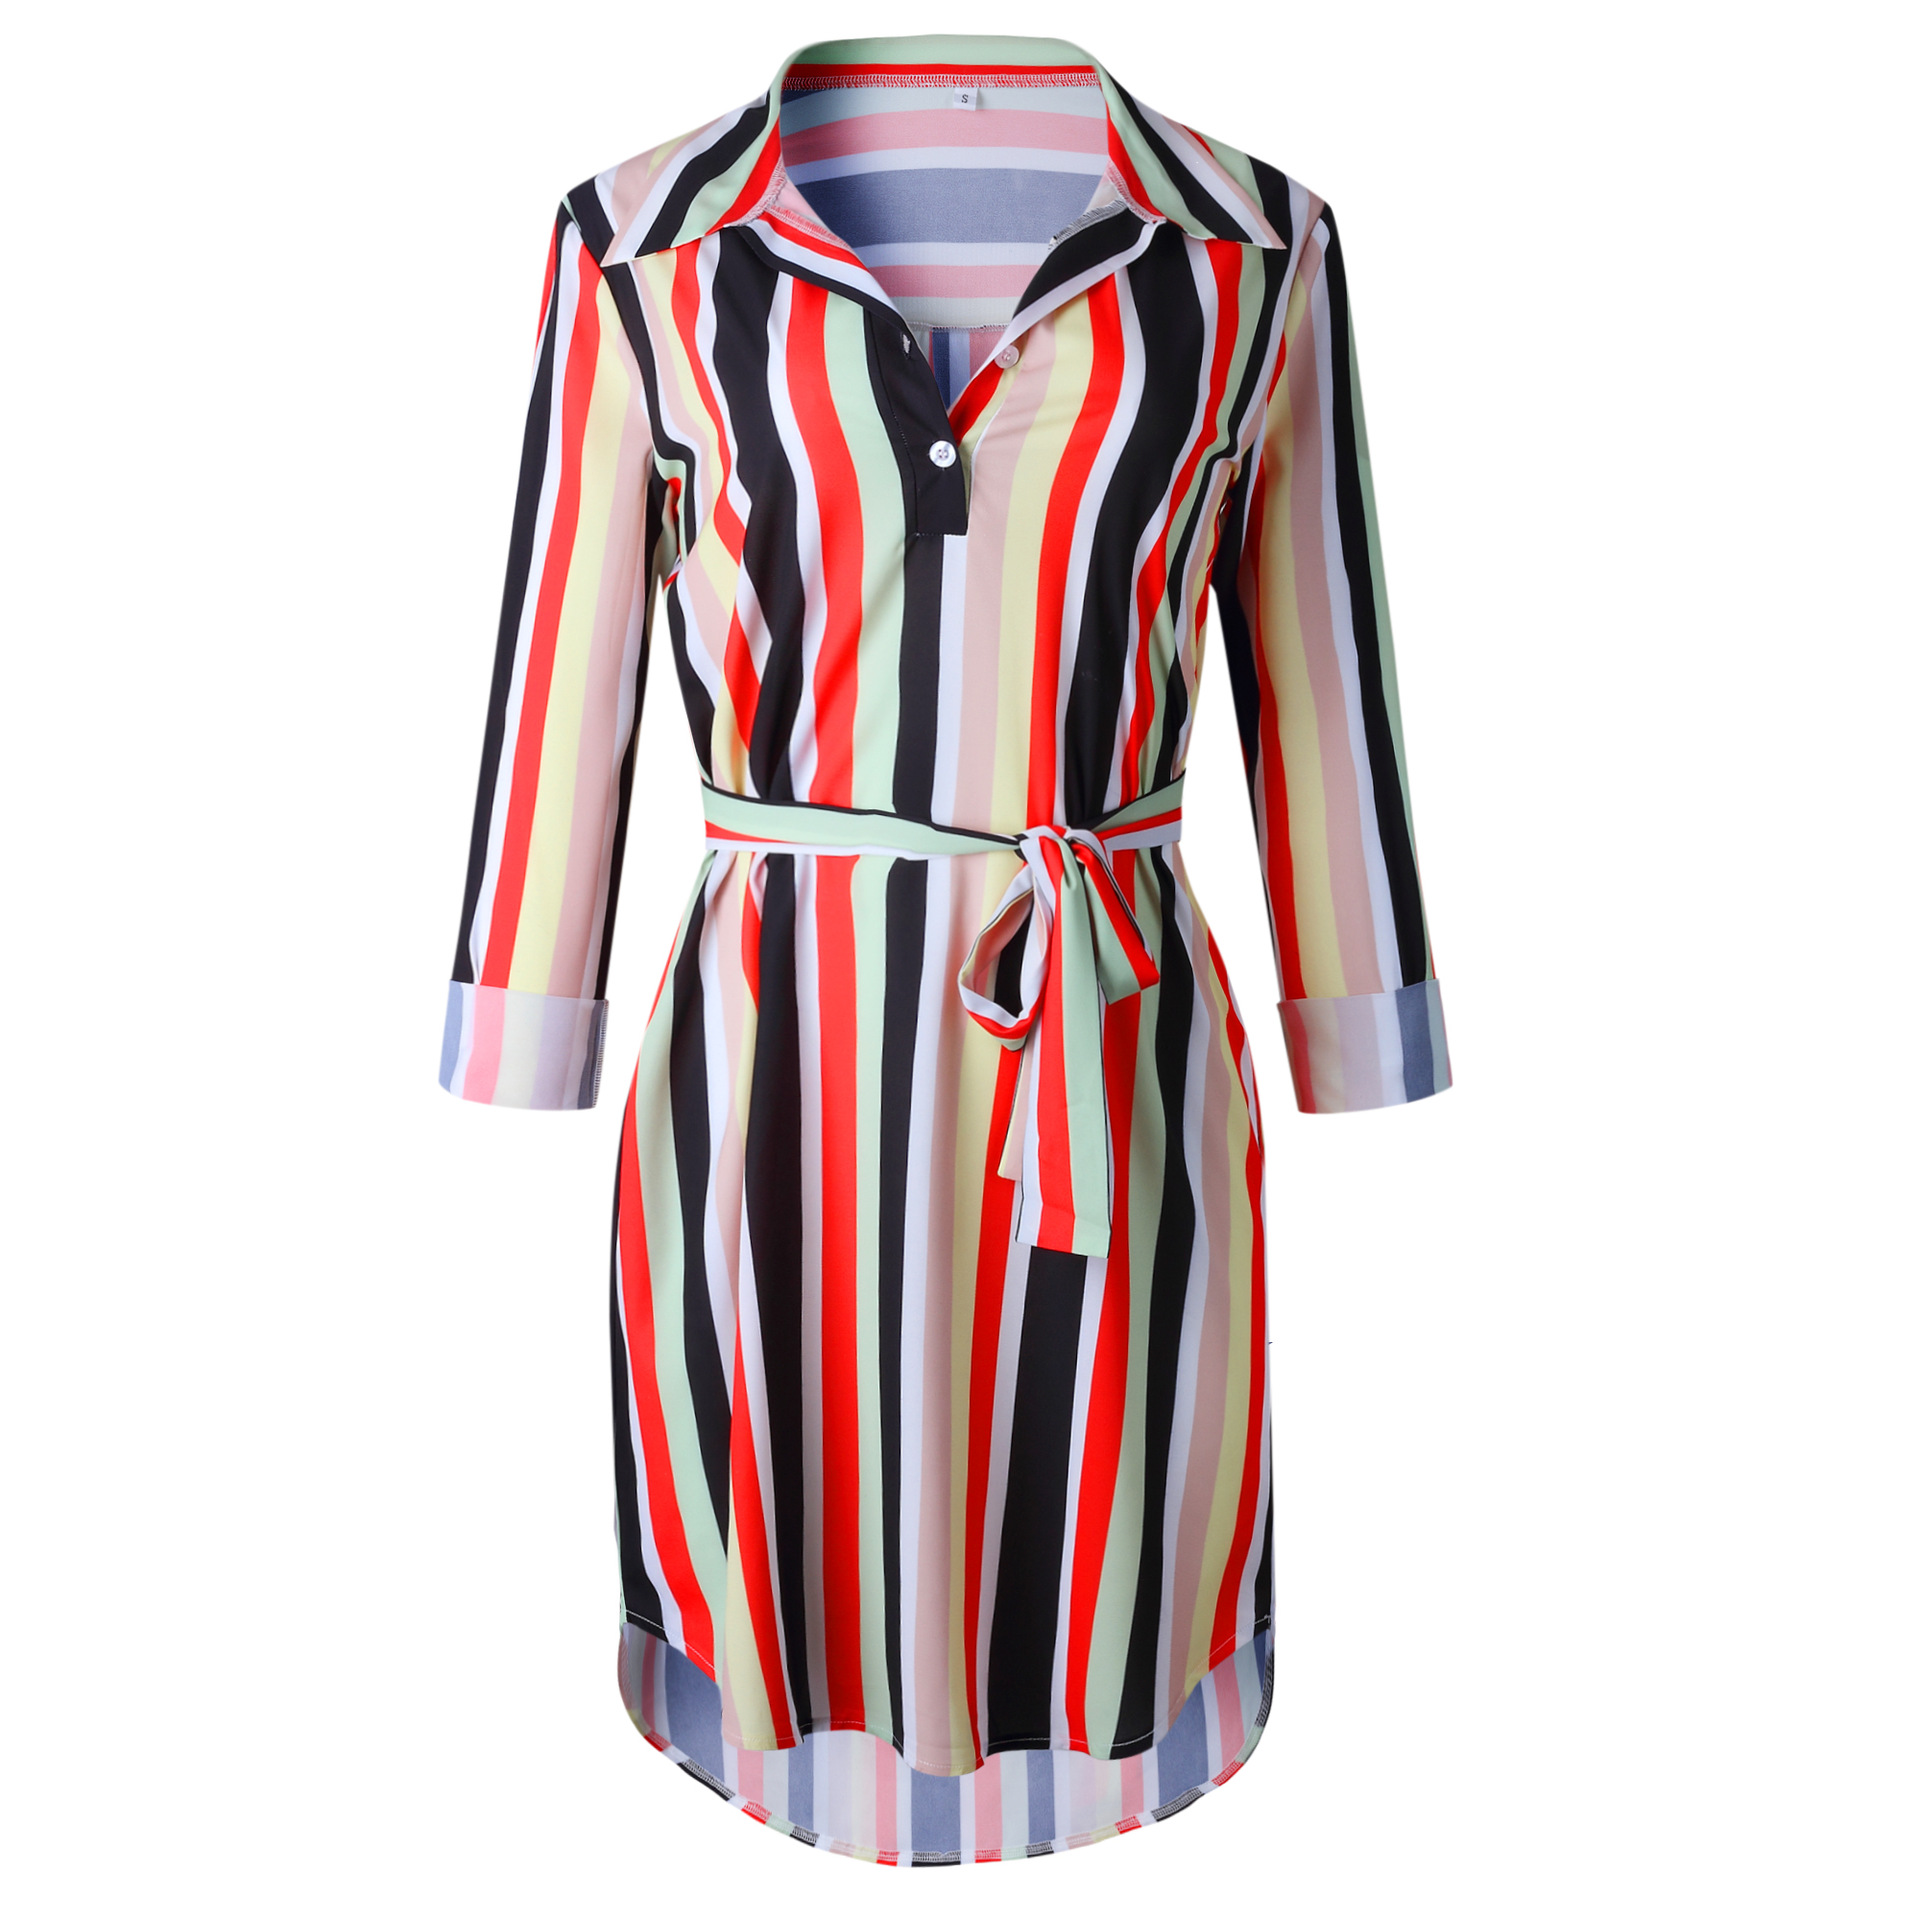 Women Autumn Striped Shirt Dress Ladies Casual Long Sleeve Loose Beach Dresses 2019 Autumn Female Fashion Print Dress Vestidos in Dresses from Women 39 s Clothing